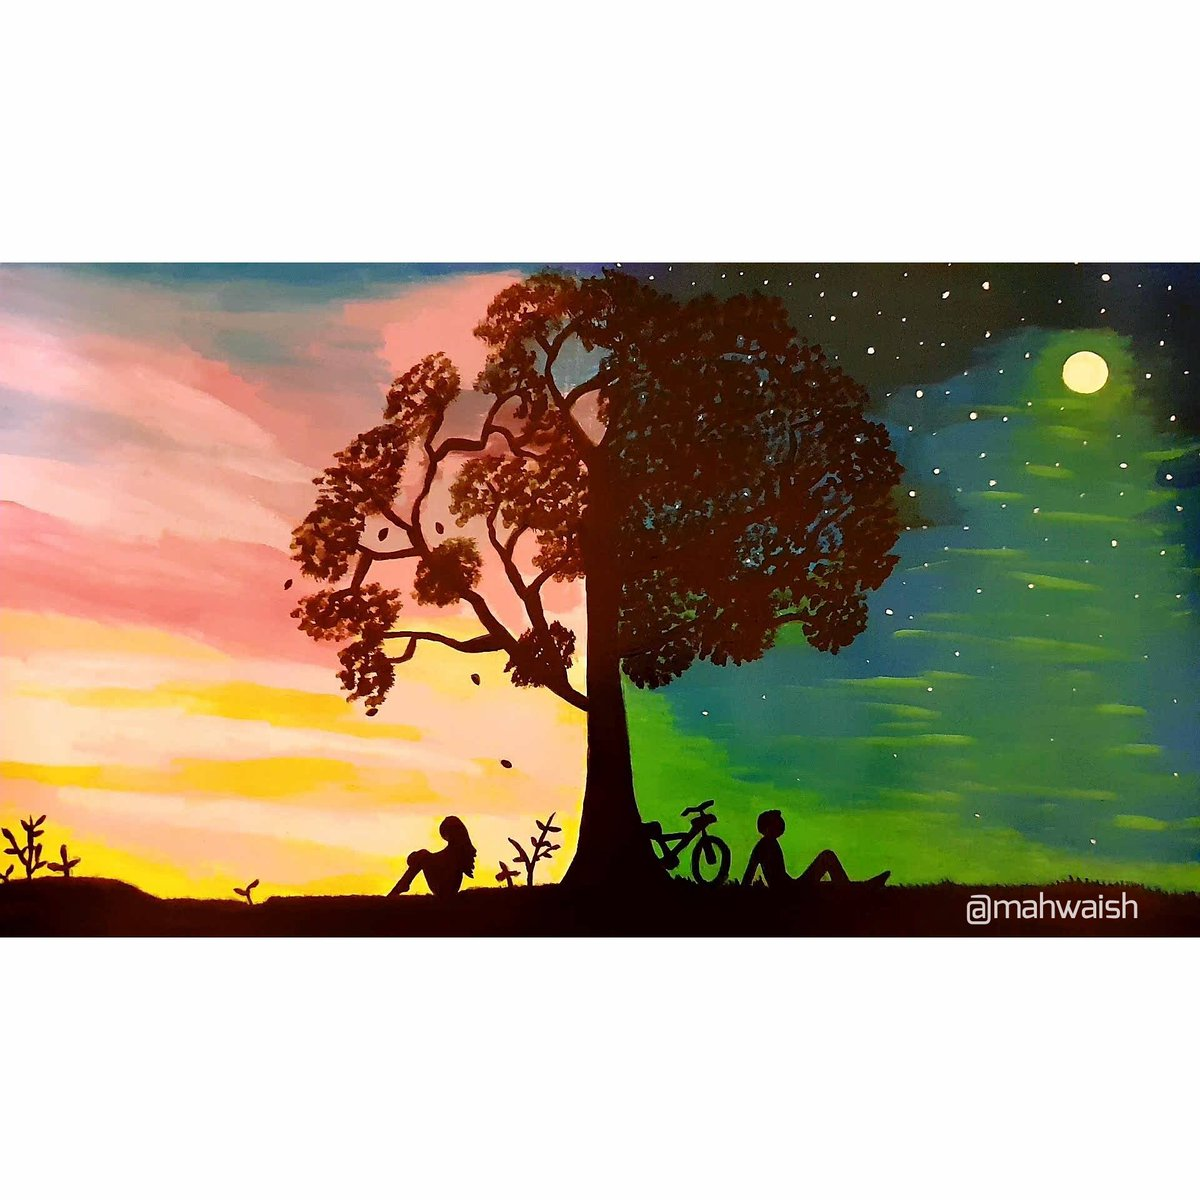 """""""I know you're somewhere out there, somewhere far away""""~Bruno Mars (Talking to the moon) Different worlds painted by me. Inspired by demasiadomar art. #art #painting #artists #ArtistOnTwitter #acrylicpainting #paint #artist #artlover #artistic #paintings #BrunoMars #music #arts"""